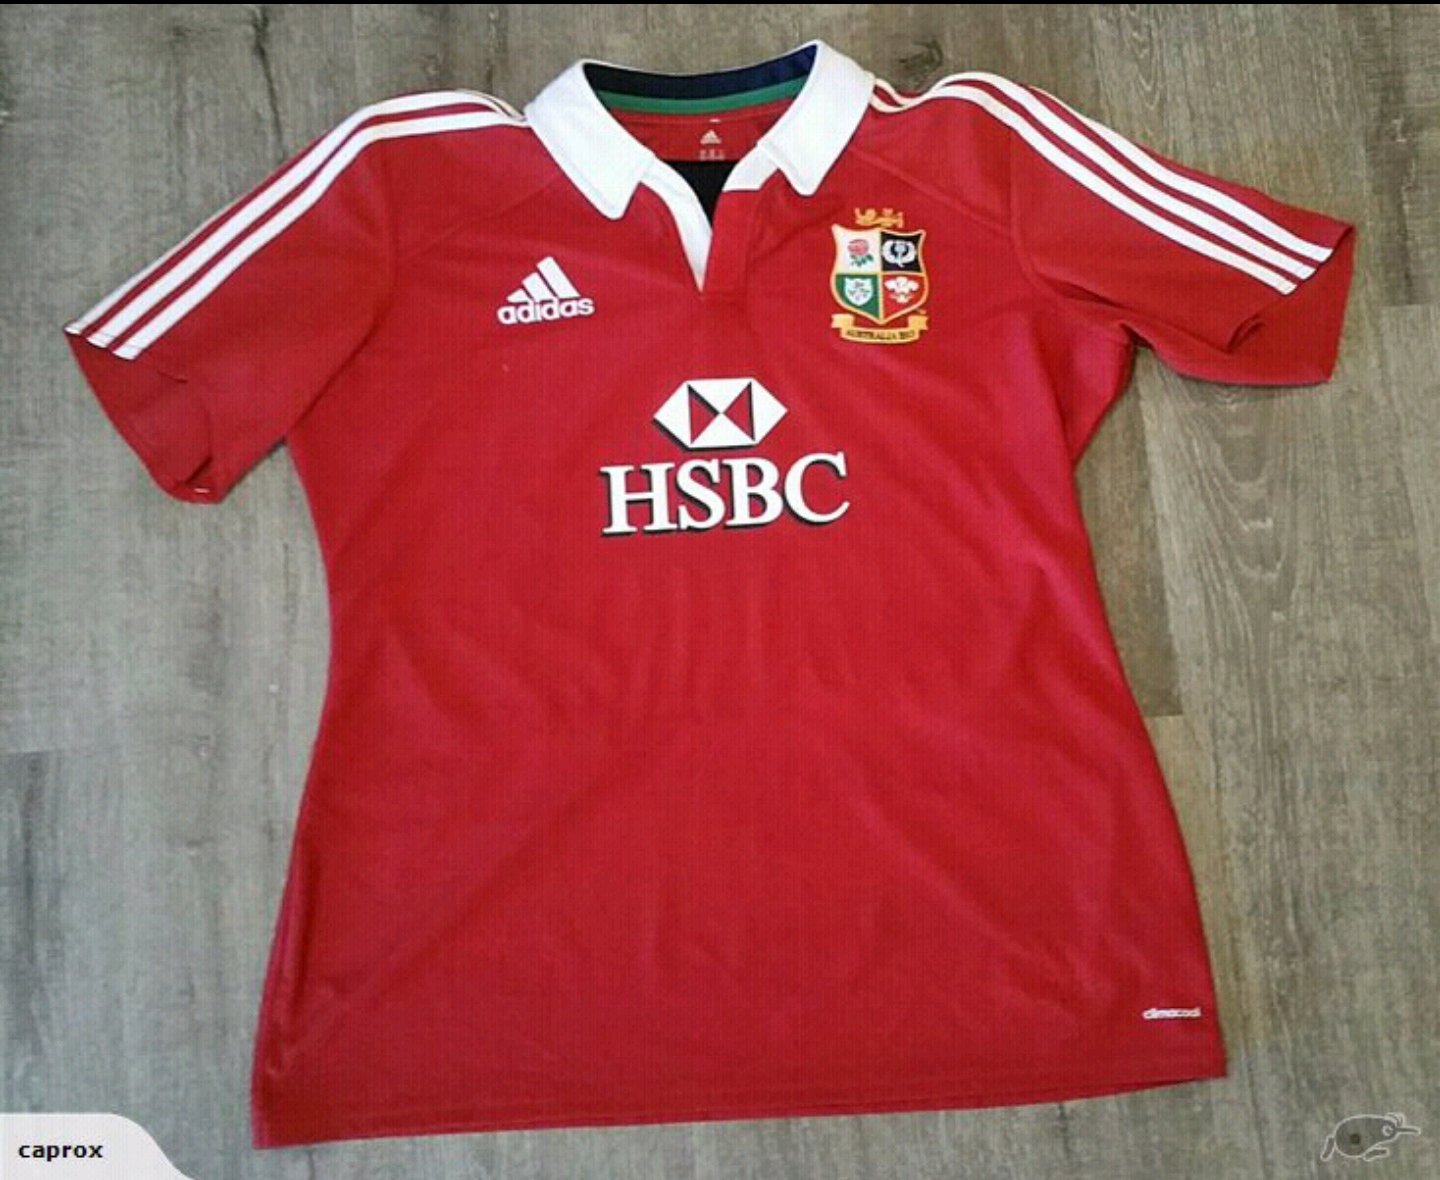 cbc6a0ac Froggy's Rugby Jerseys Collection: 2013 British and Irish Lions #18 ...